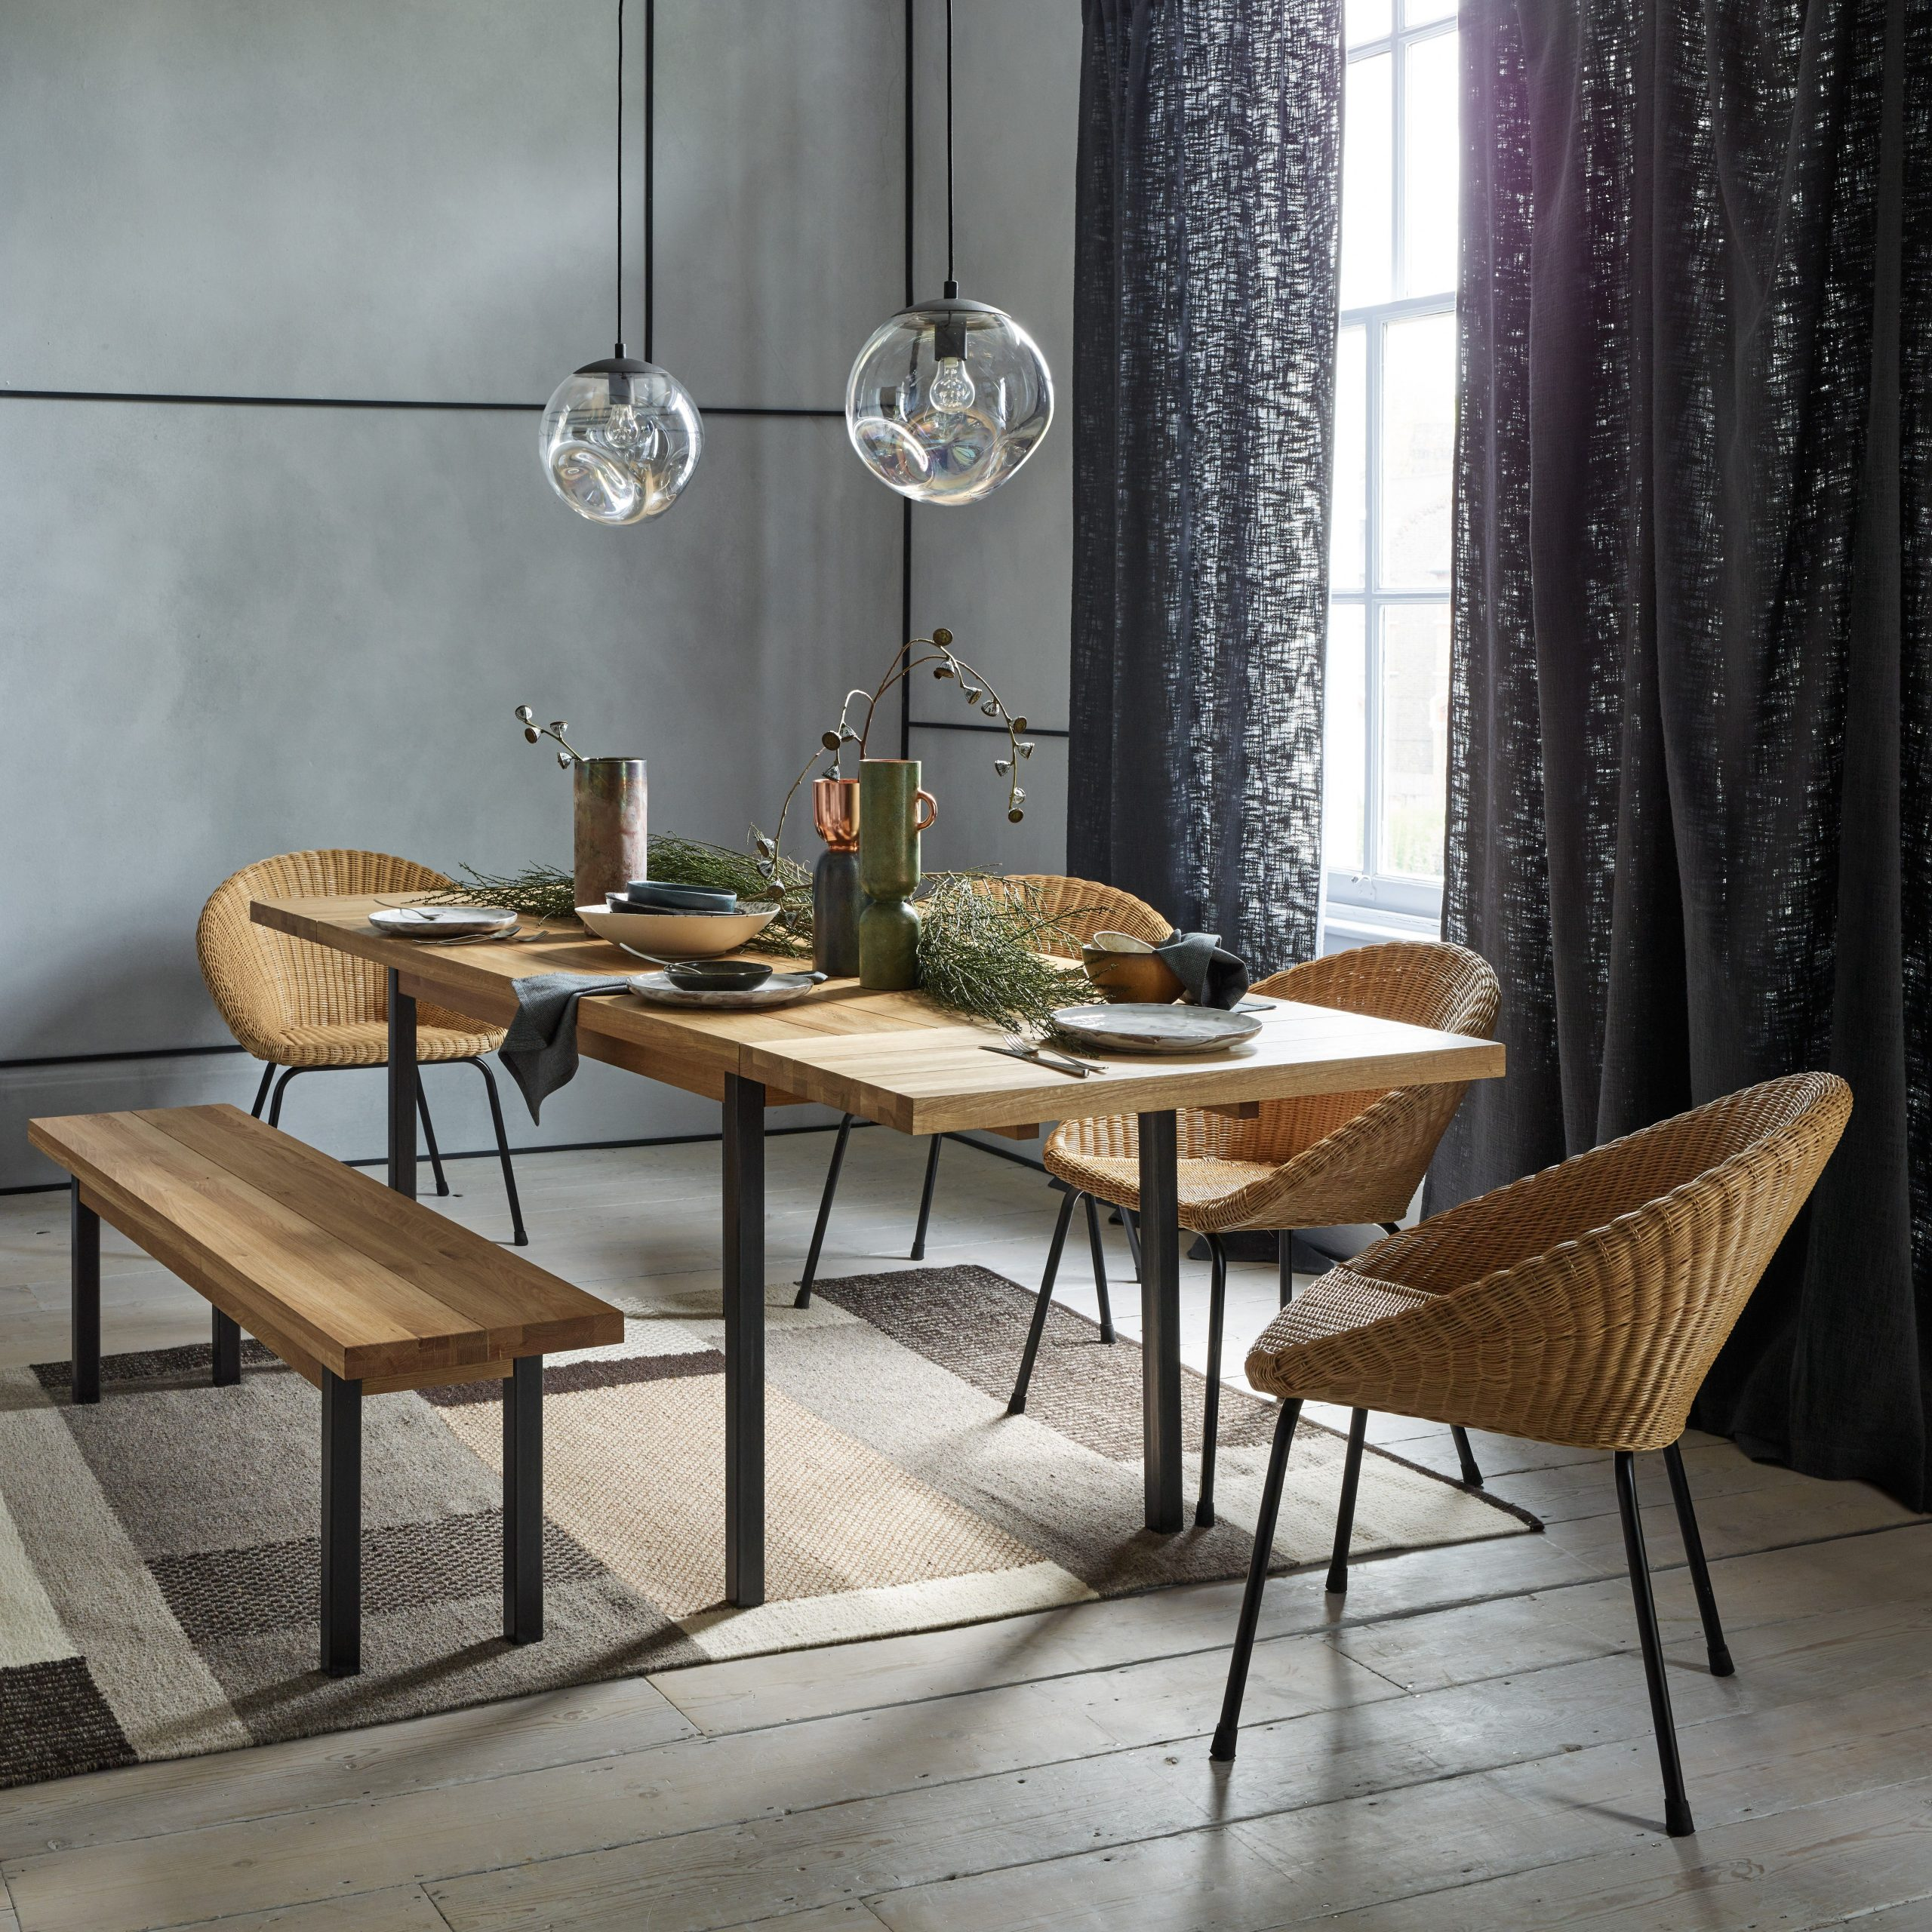 Preferred Feliz 6 12 Seater Solid Oak Extending Dining Table Within Rustic Mid Century Modern 6 Seating Dining Tables In White And Natural Wood (View 19 of 30)